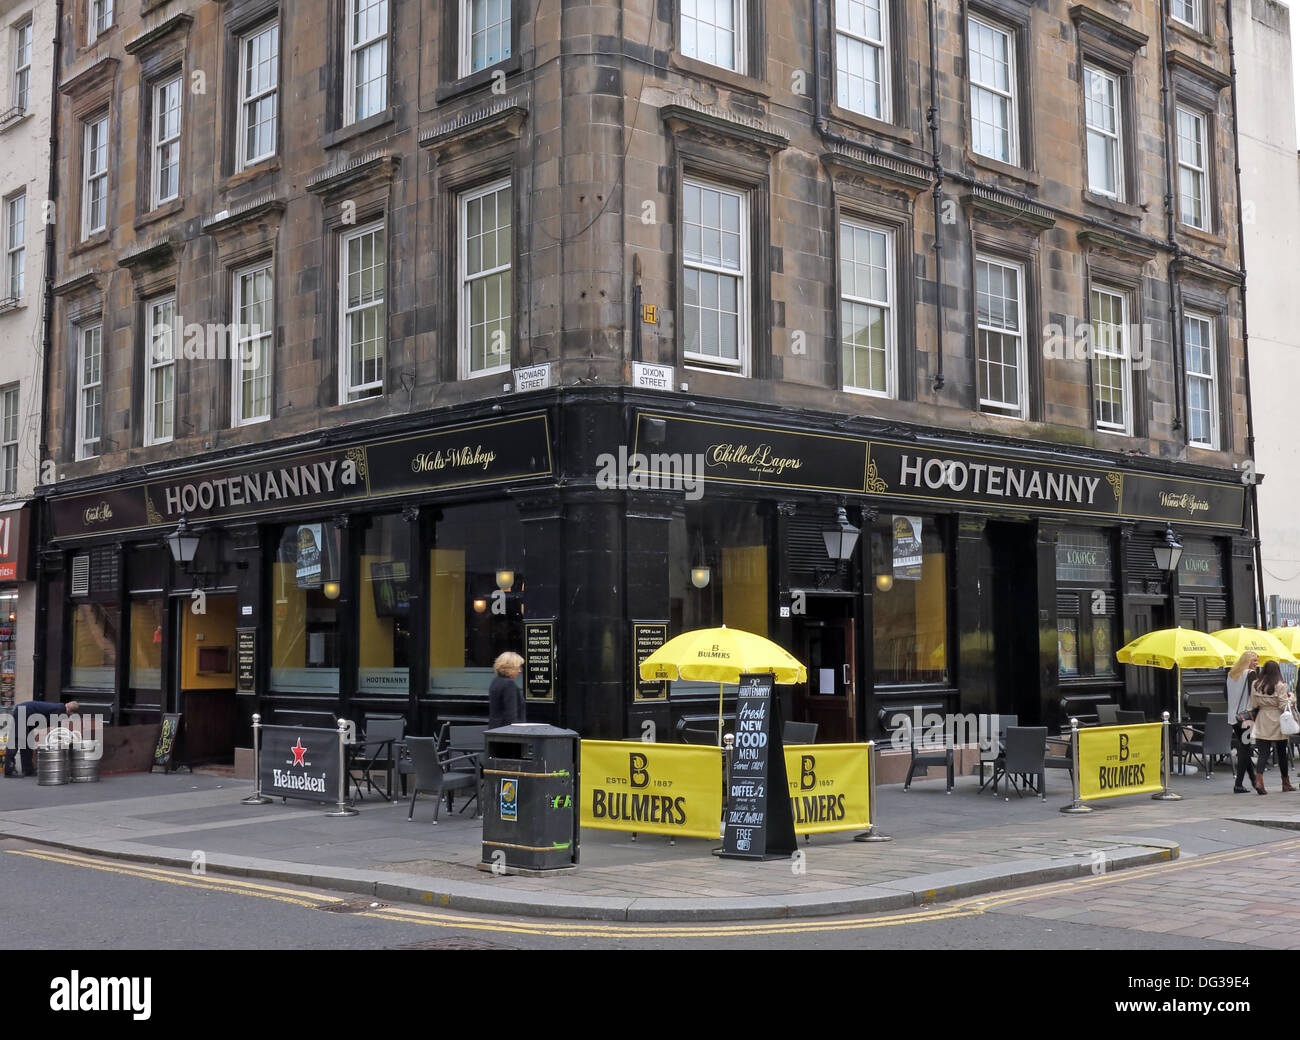 Hootenanny Bar, Howard st, Glasgow, Scotland, UK Stock Photo